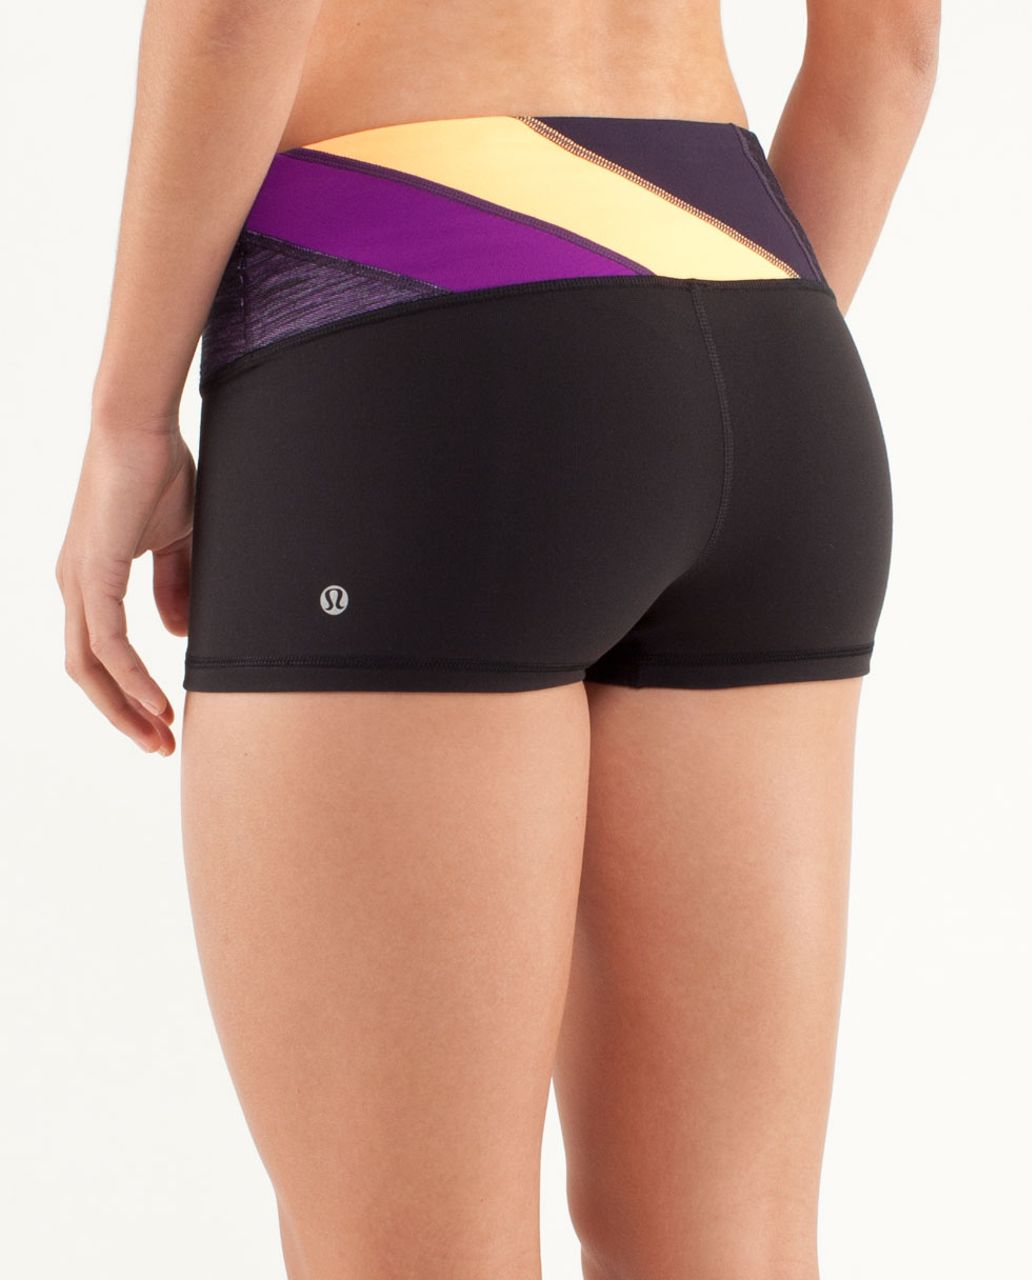 Lululemon Boogie Short - Black / Winter 12 Quilt 1 / Tender Violet